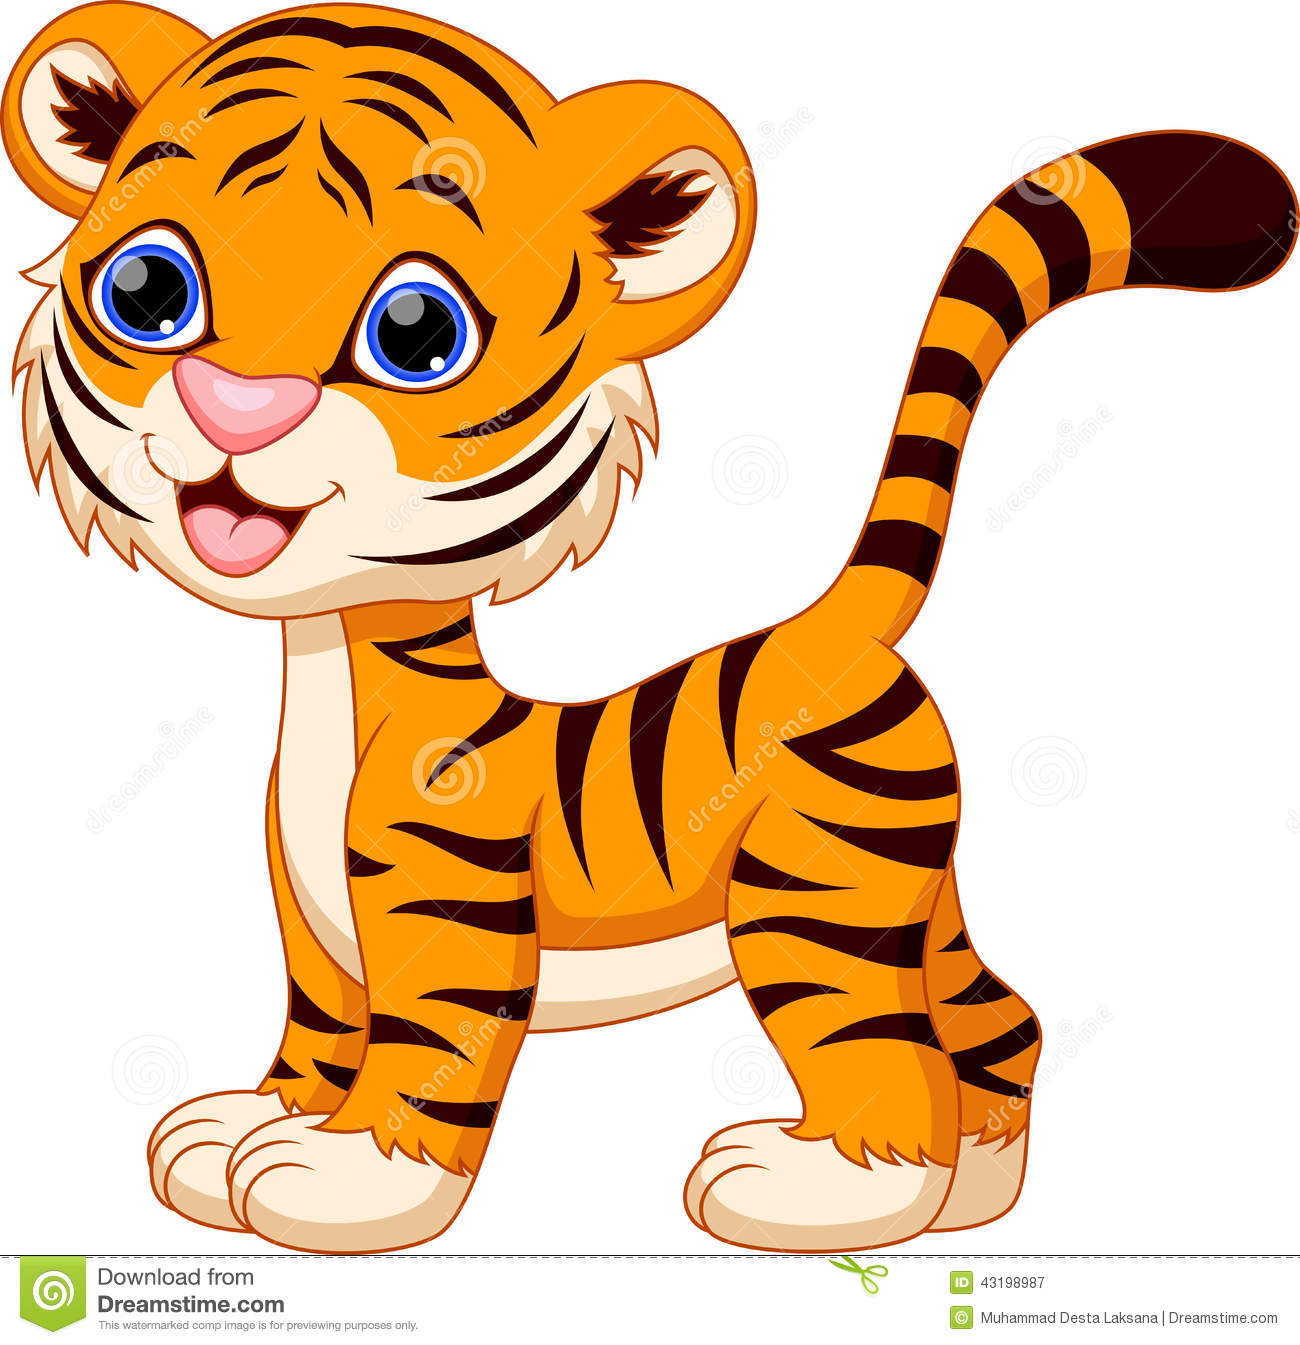 Cute tiger cartoon stock illustration illustration of cute 43198987 - Image dessin tigre ...